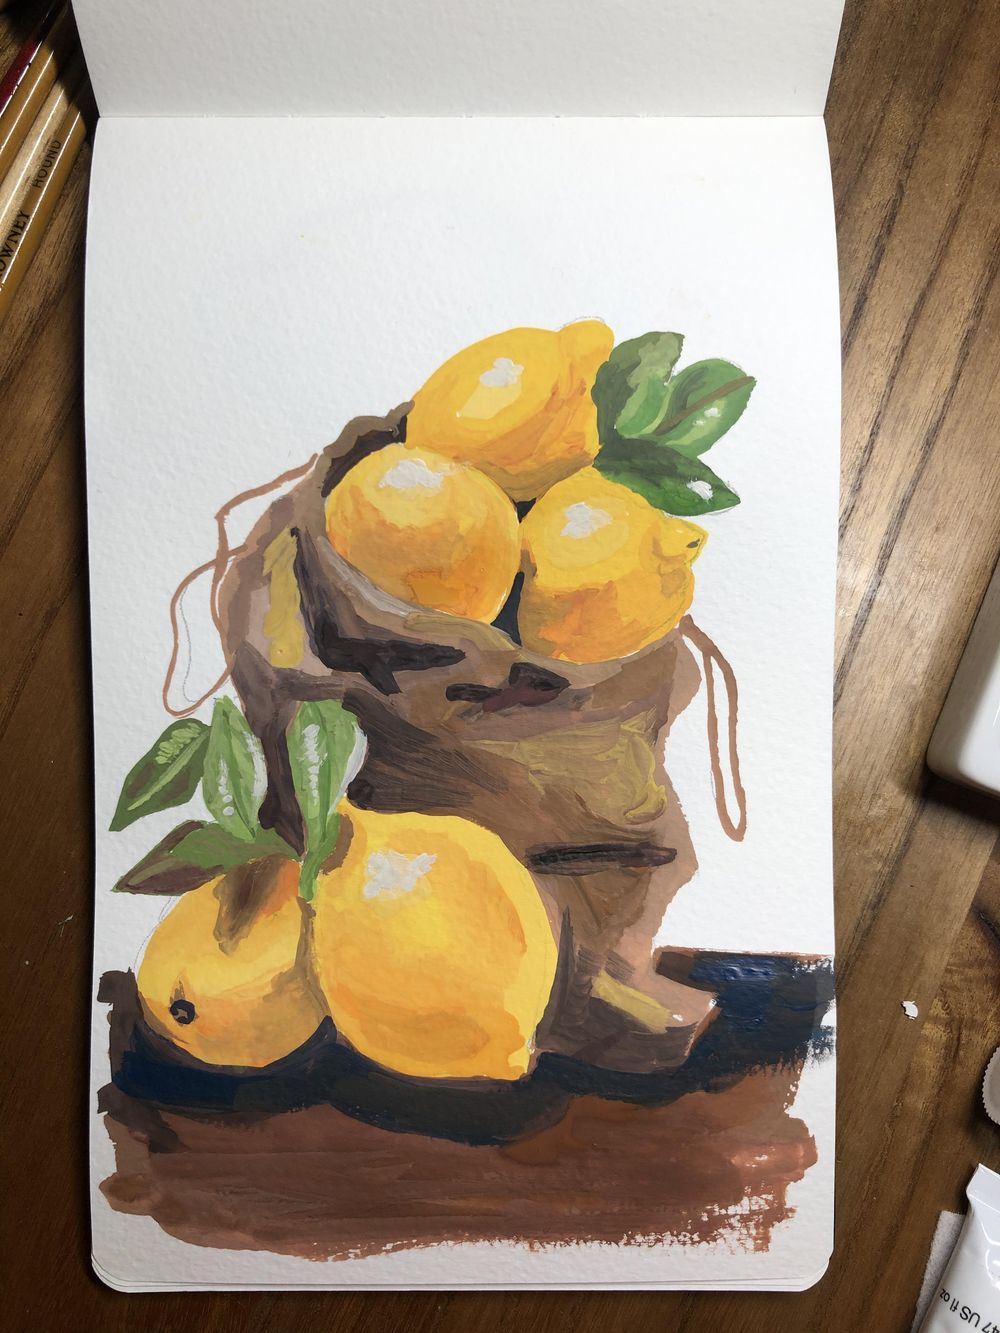 Gouache still life - image 3 - student project